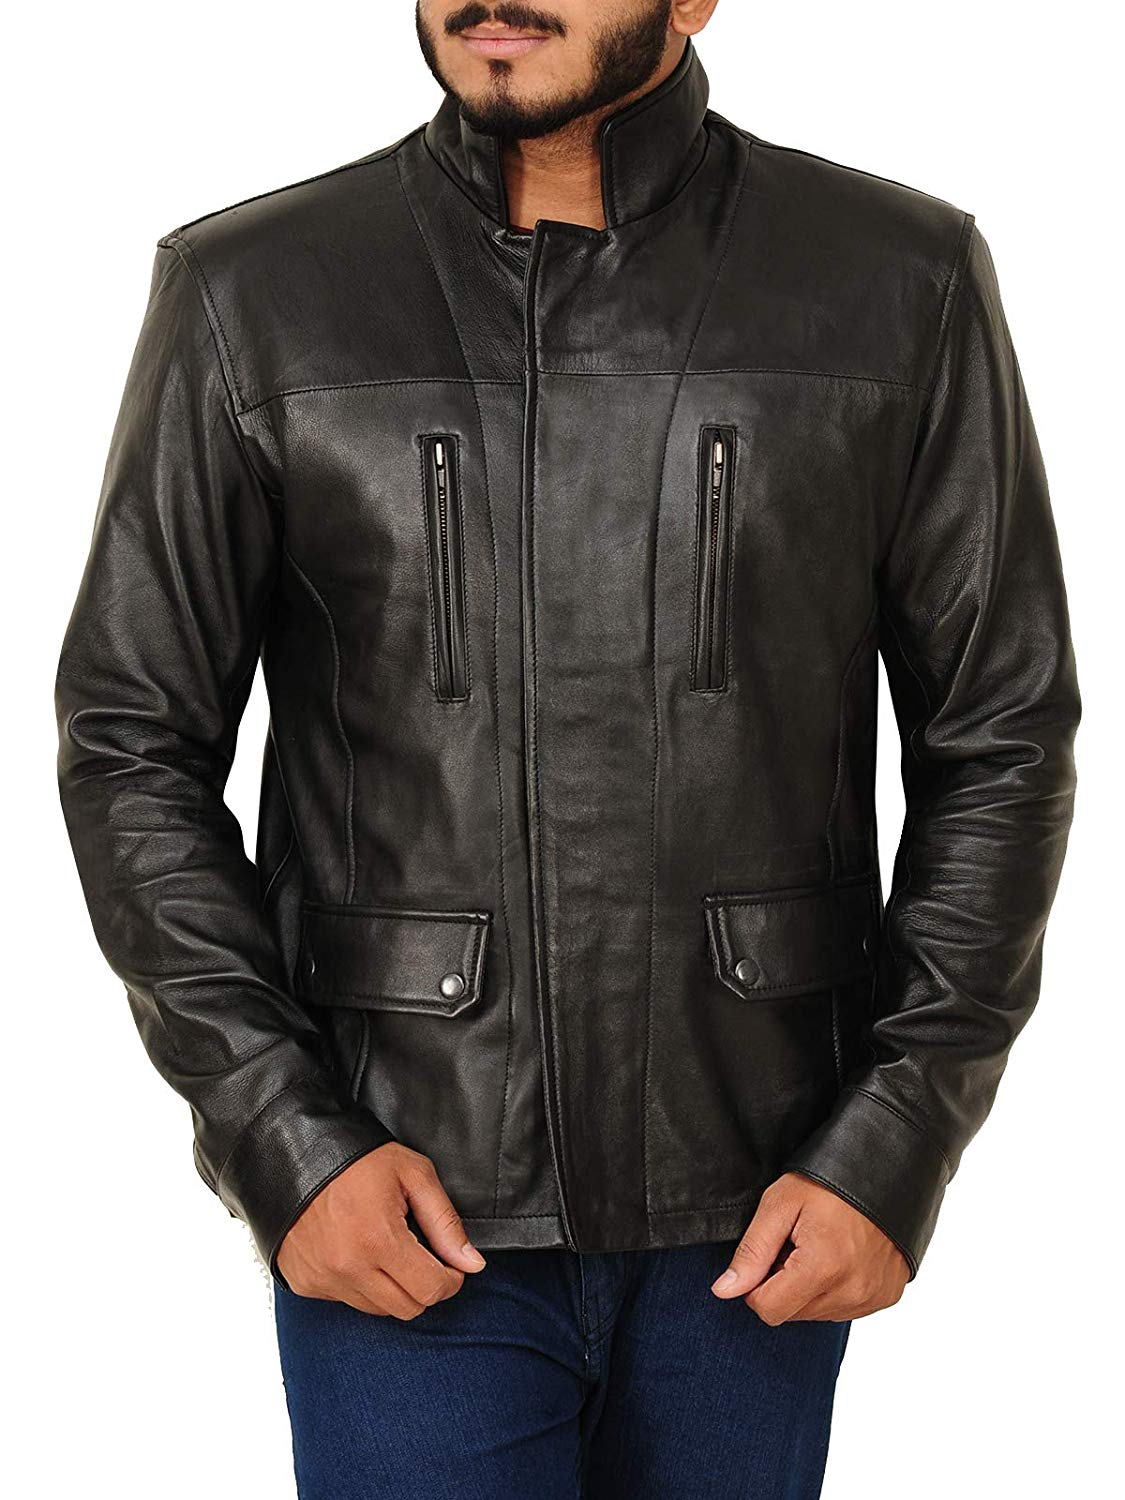 TrendHoop Premier Fashion Men's Hand Waxed Motorcycle Lambkin Leather Jacket at Amazon Men's Clothing store: